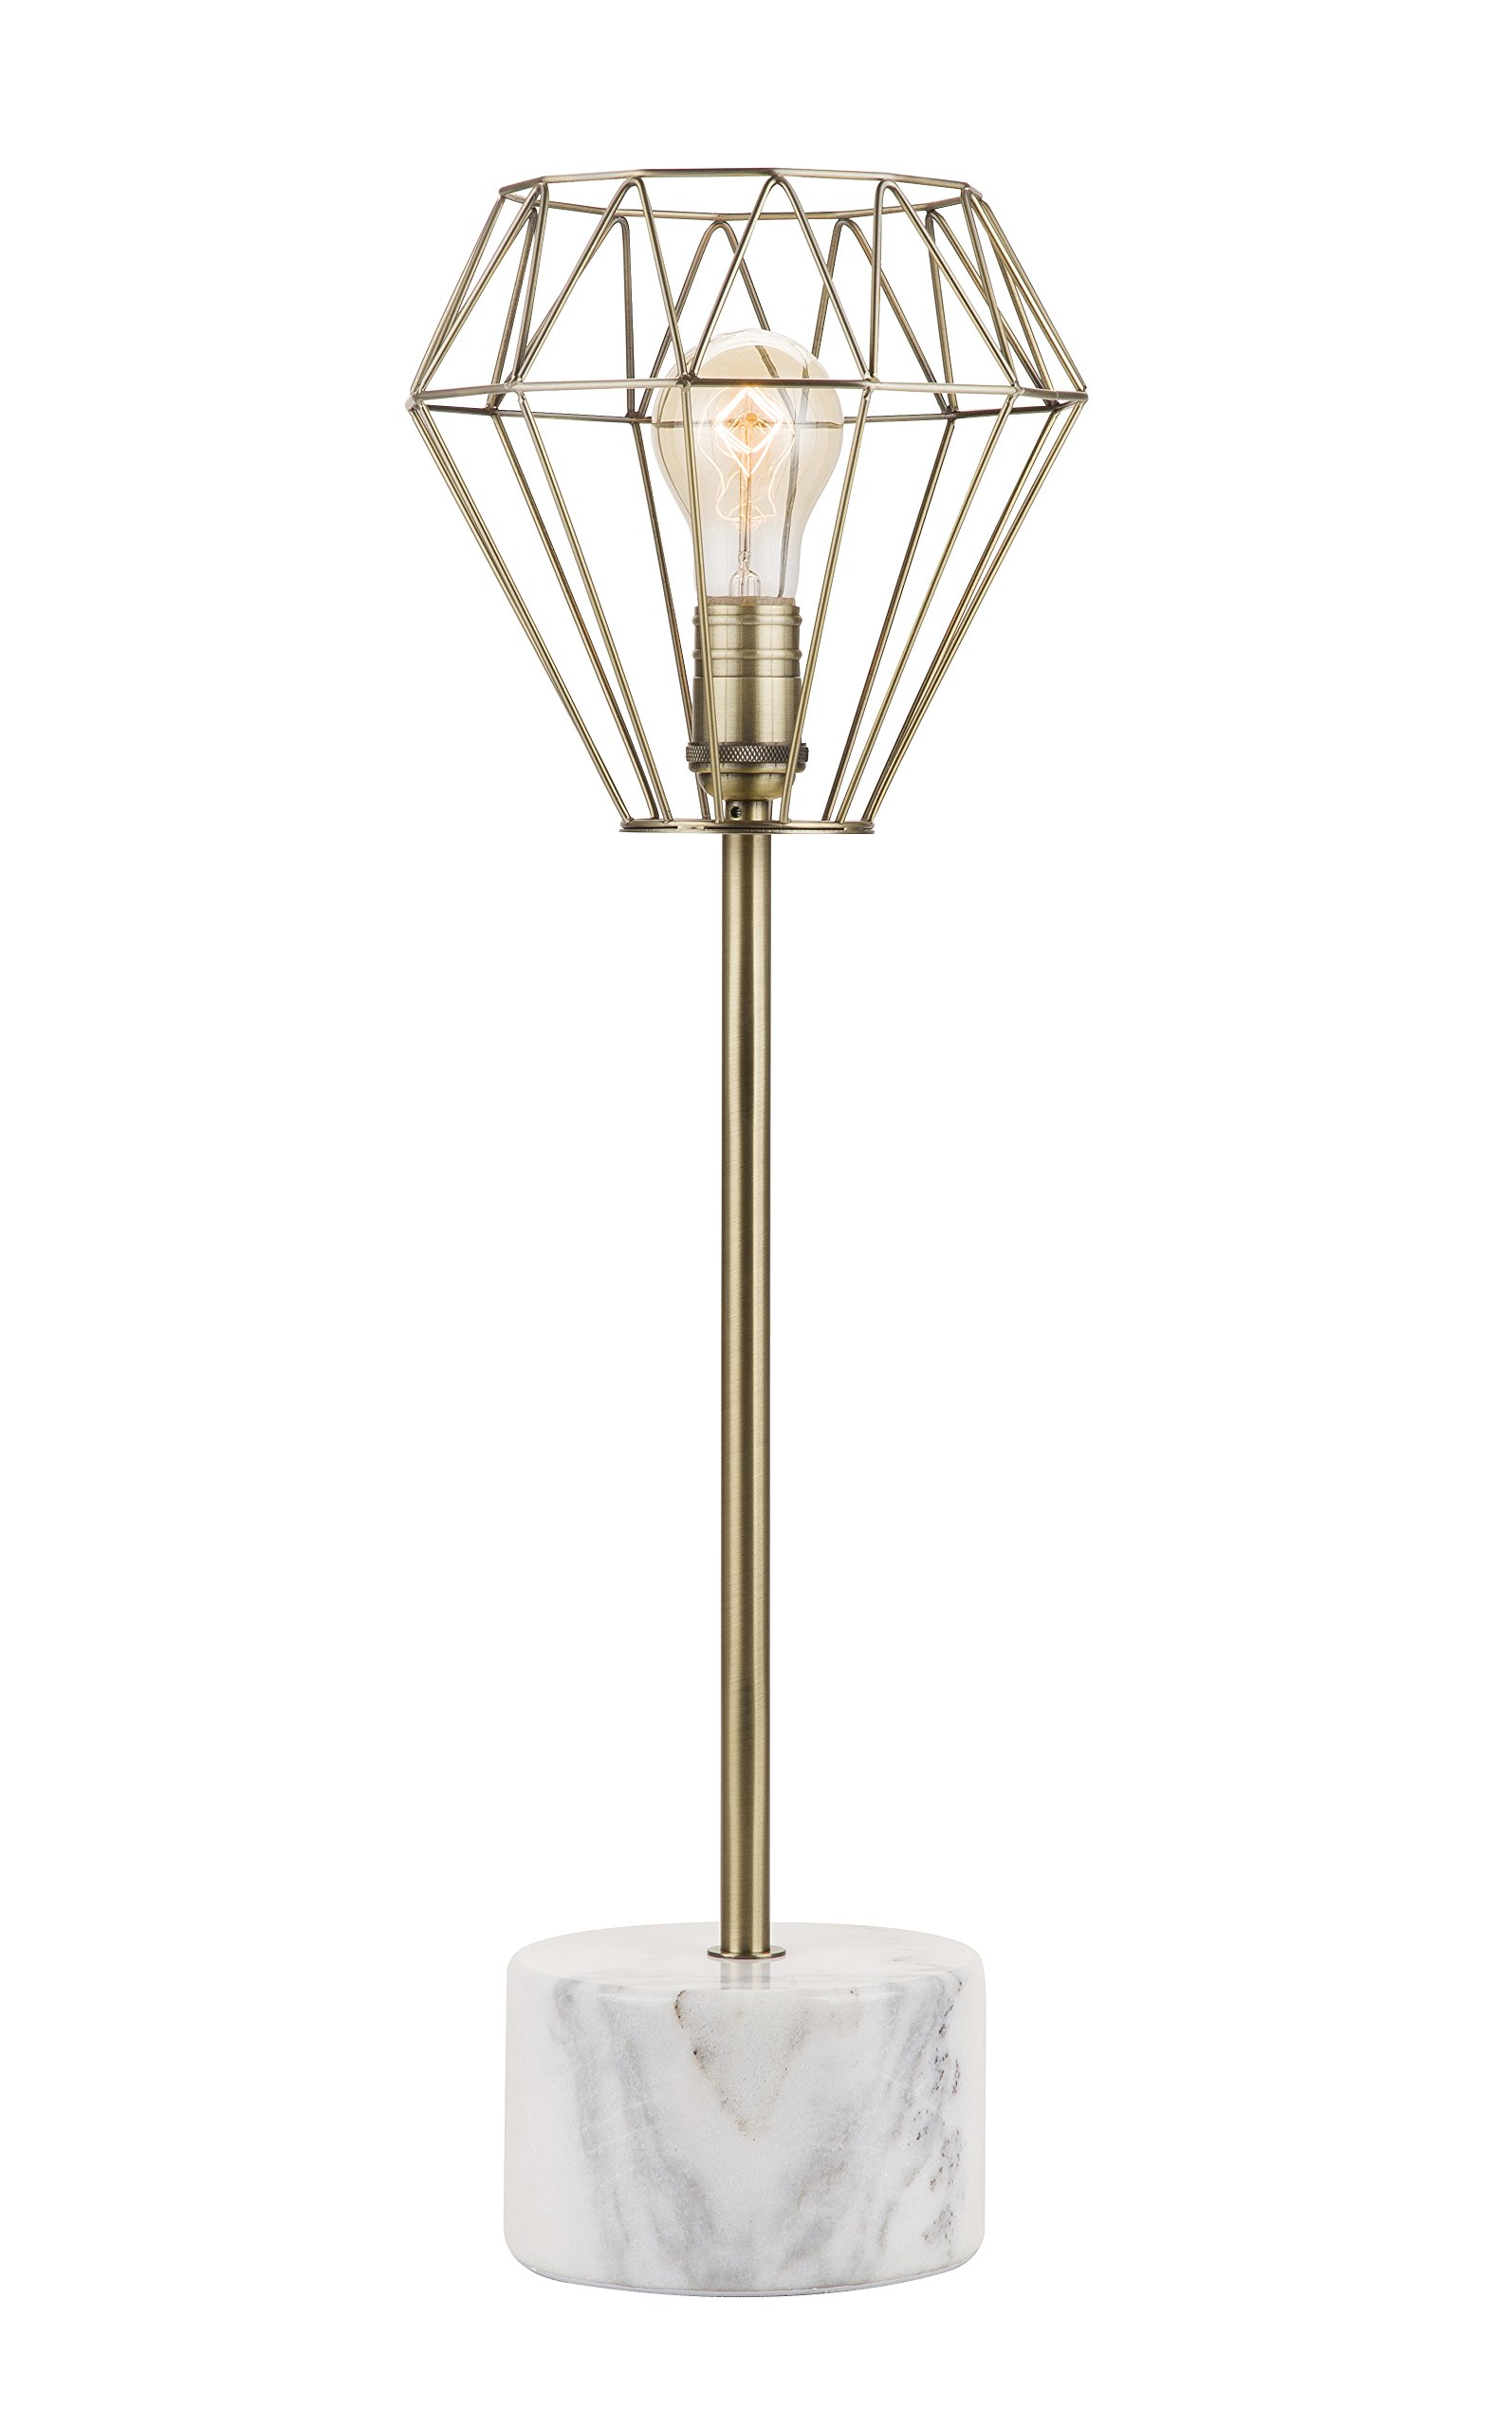 Catalina 20133-001 25-inch Marble Accent Lamp with Brass Wire Cage Shade, Bulb Included